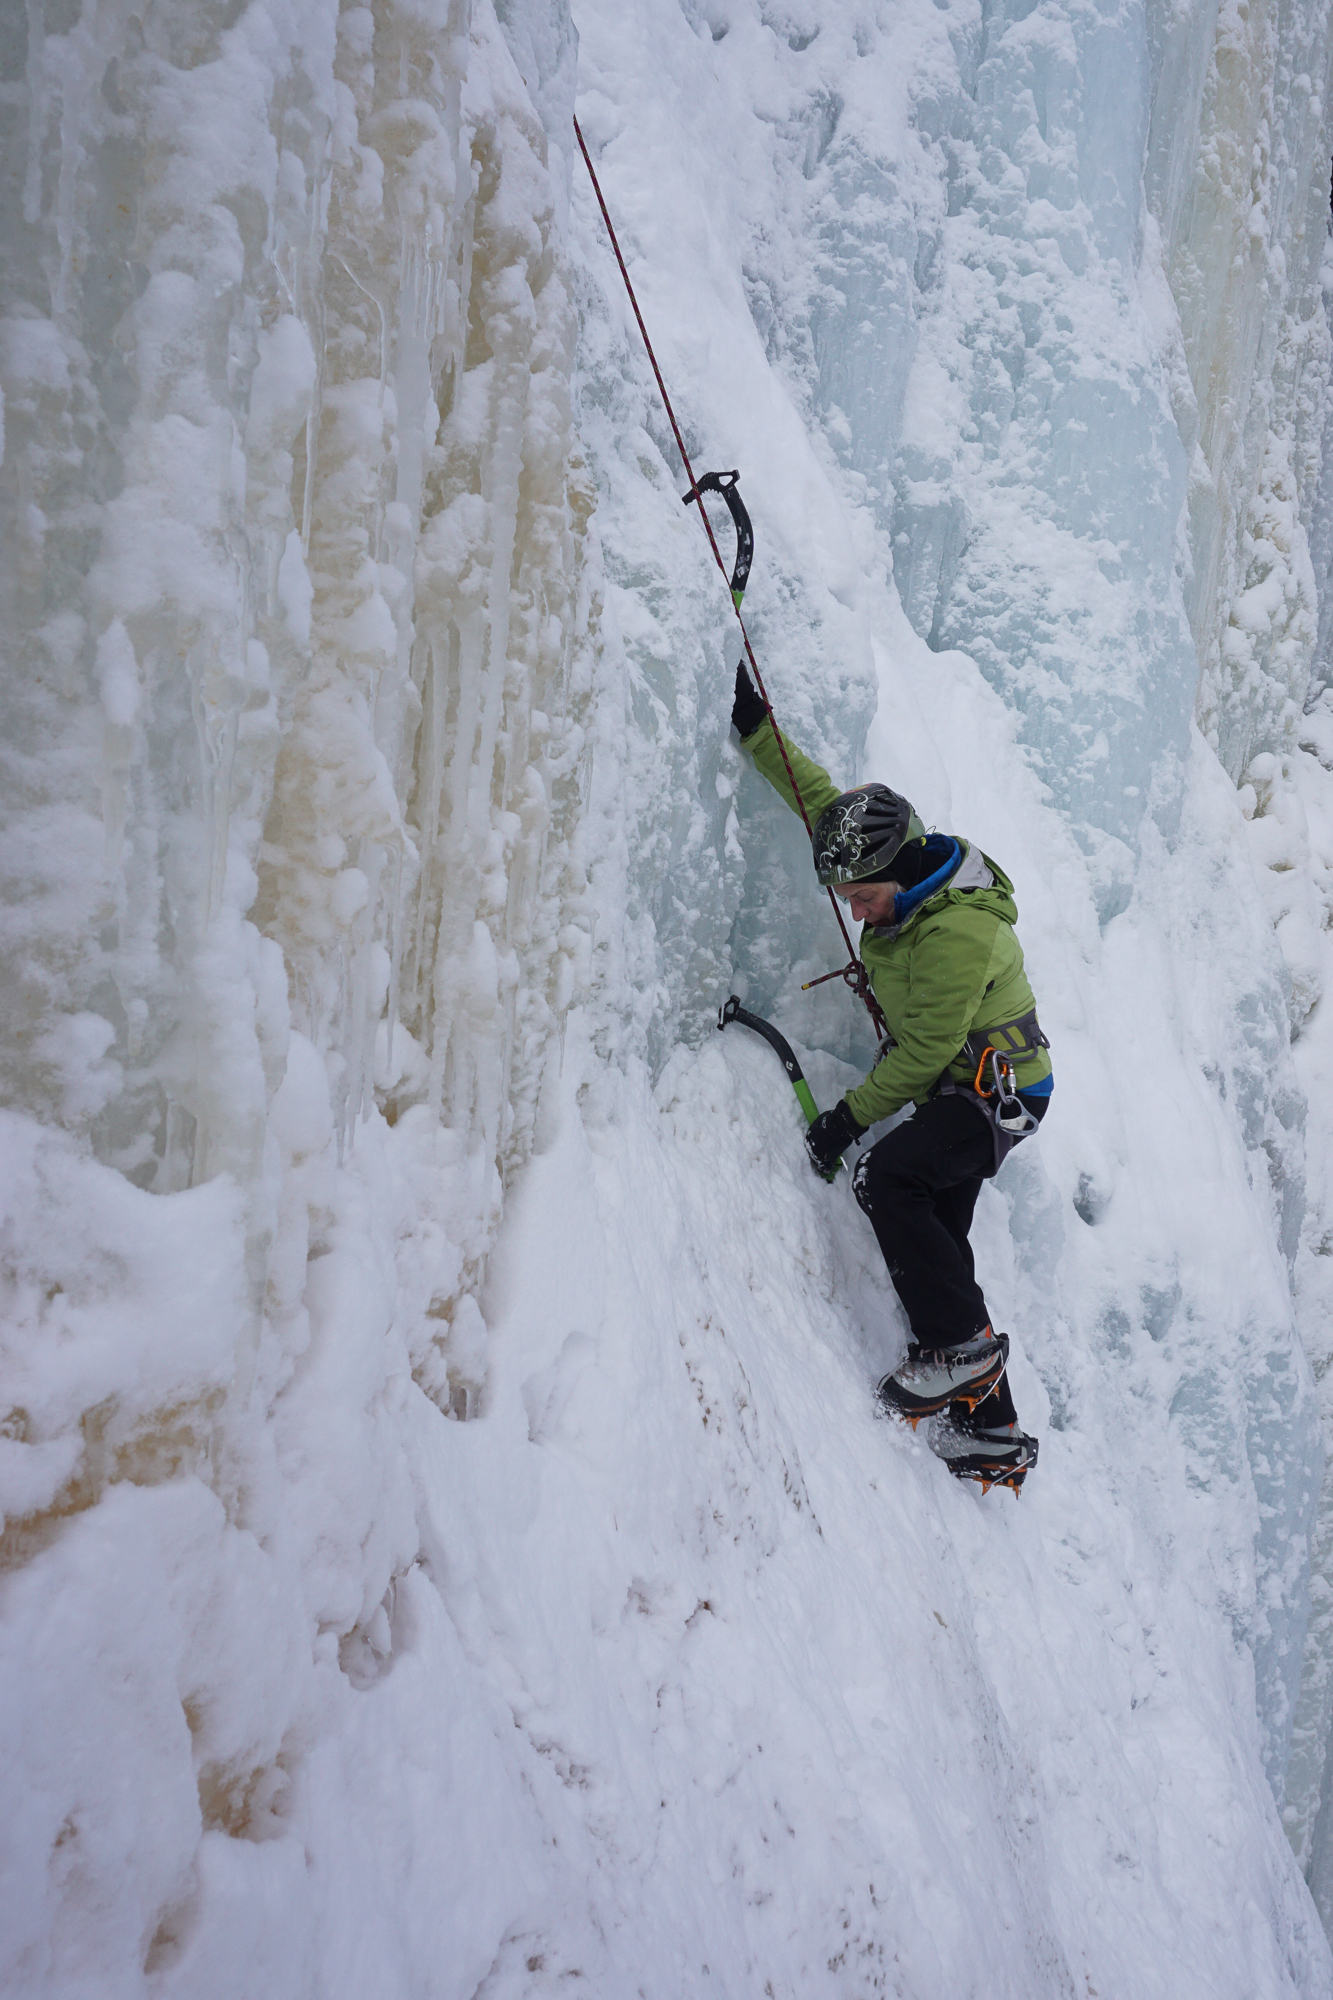 Chicks ice climbing clinic participant demonstrates how rock climbing relates to ice climbing by hanging on a straight arm